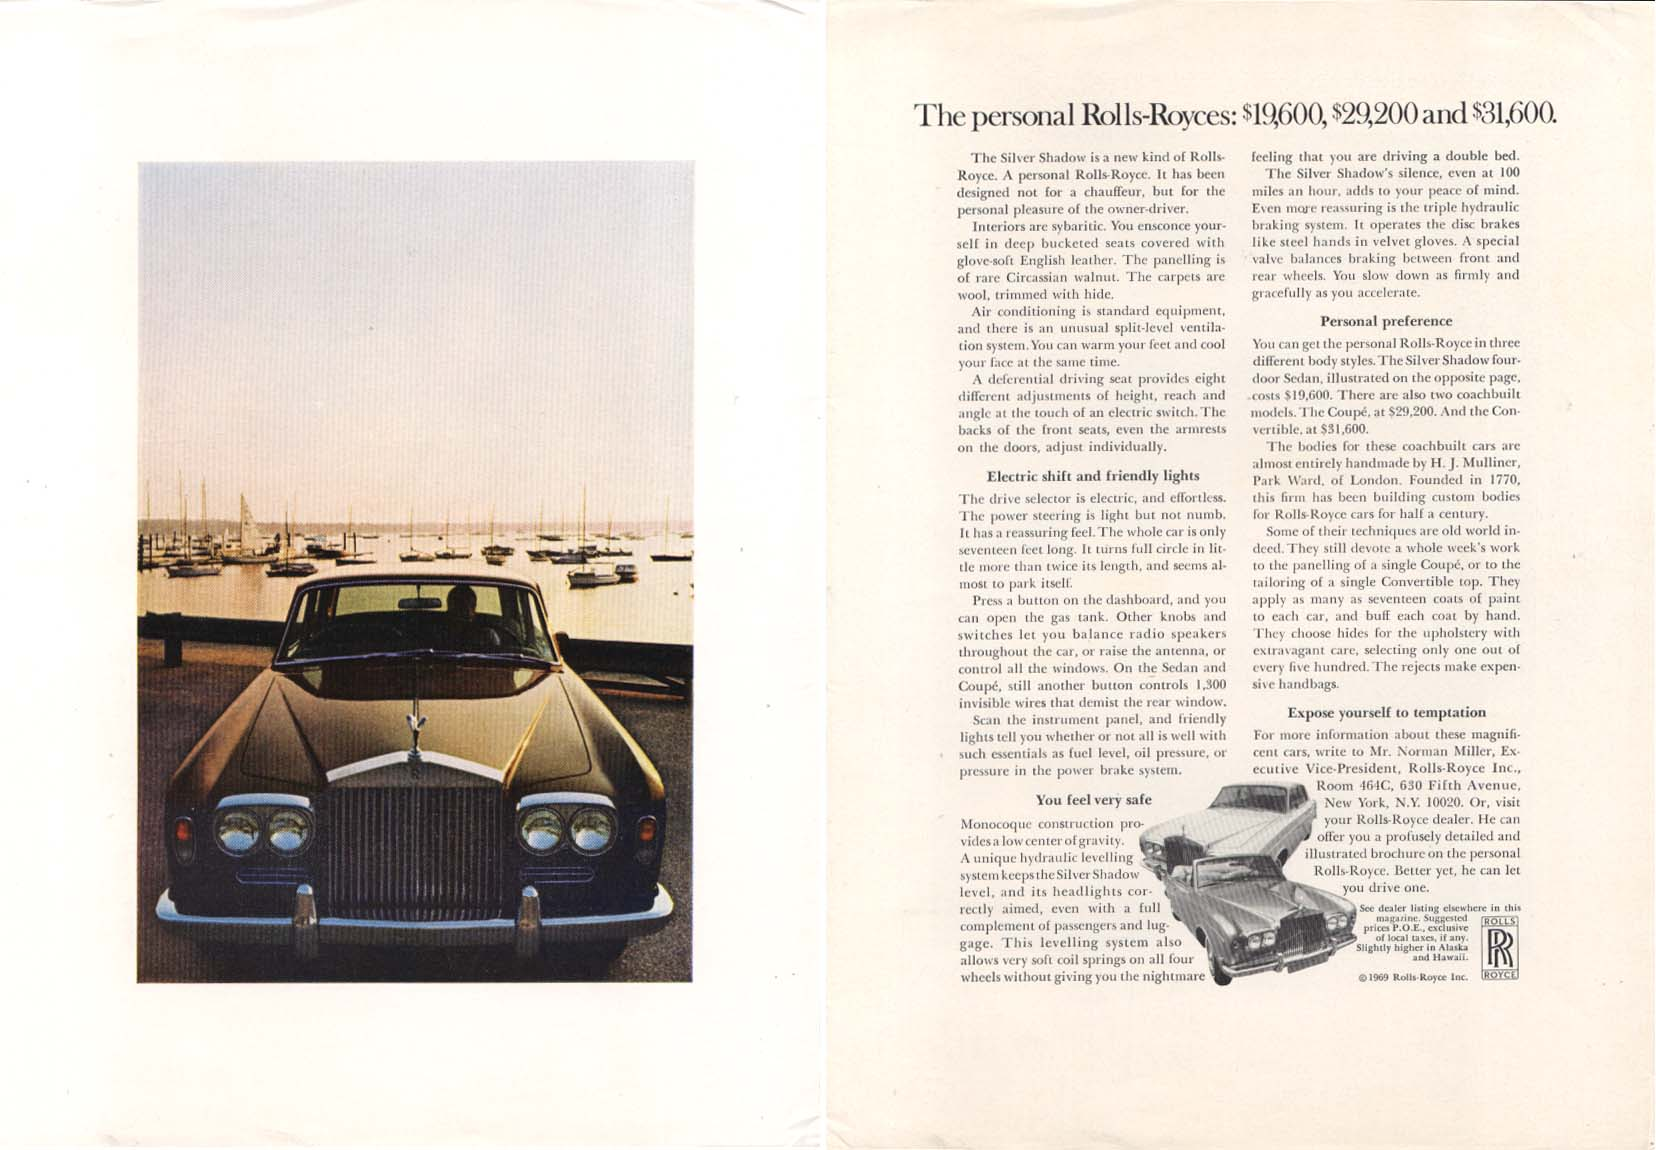 Image for Personal Rolls-Royce $19,600 $22,200 $31,600 ad 1969